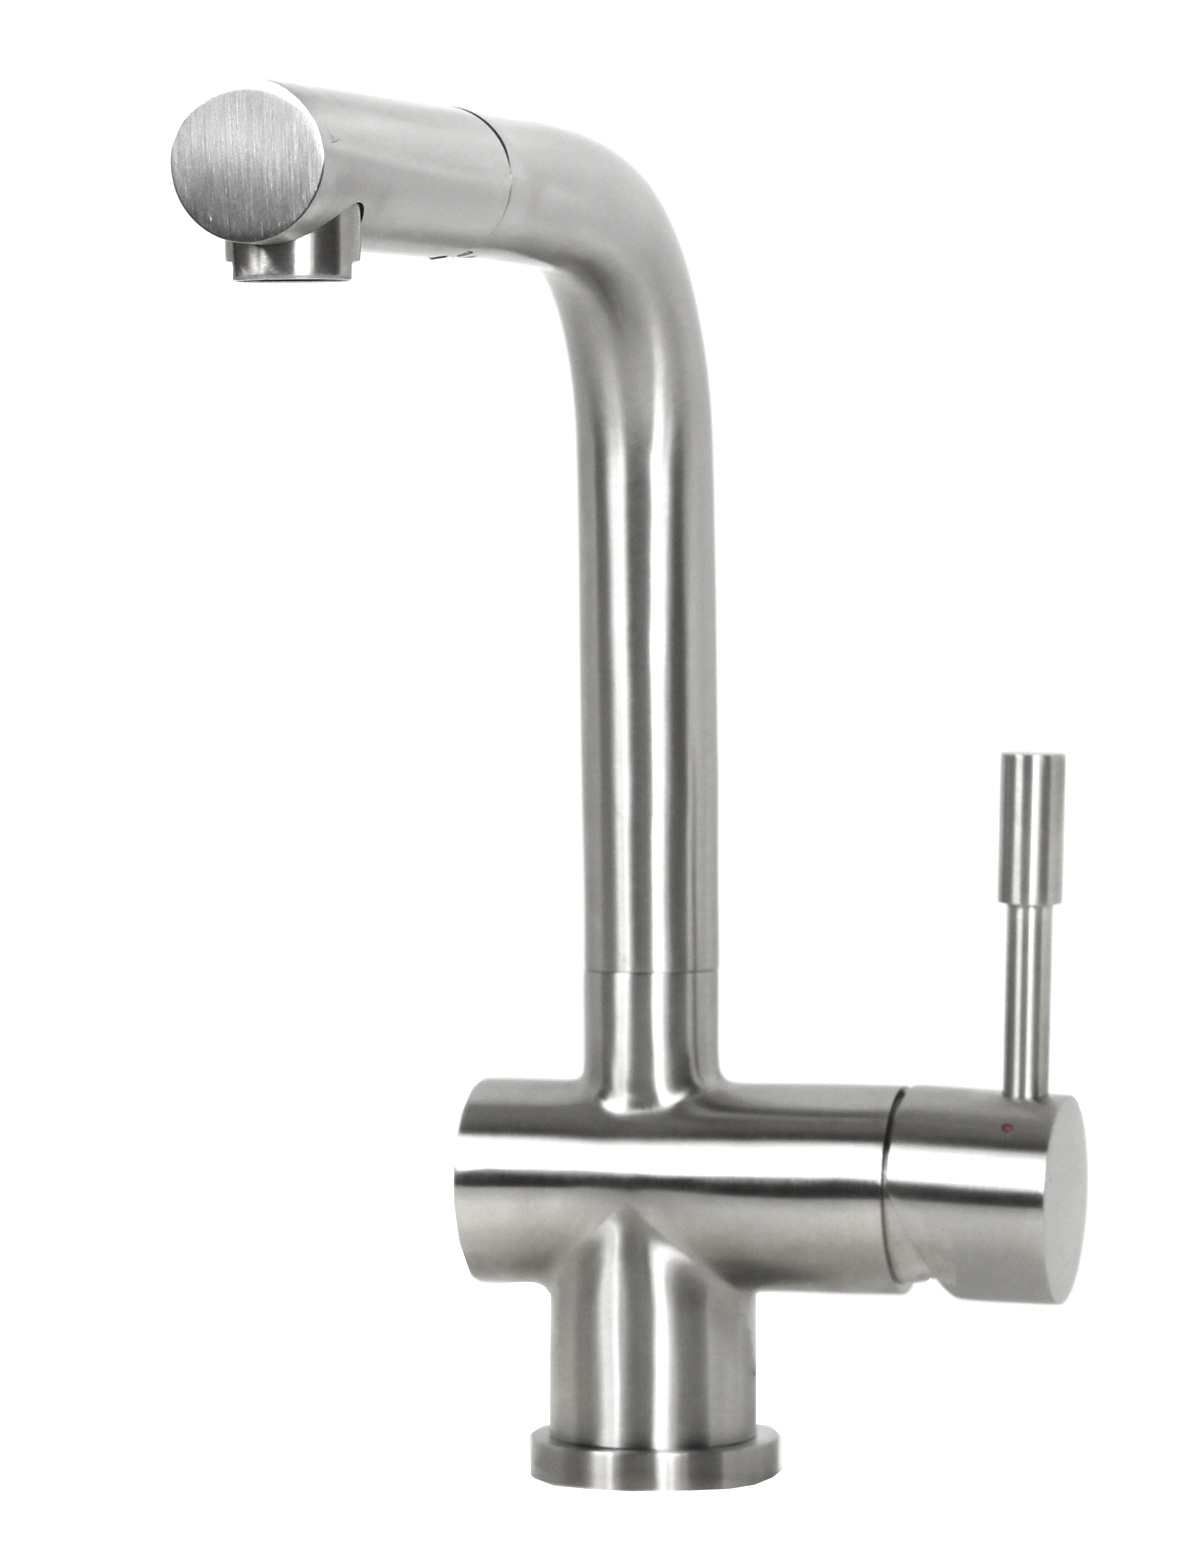 Details about Lead Free Solid 304 Stainless Steel European Style Pull Out  Kitchen Faucet